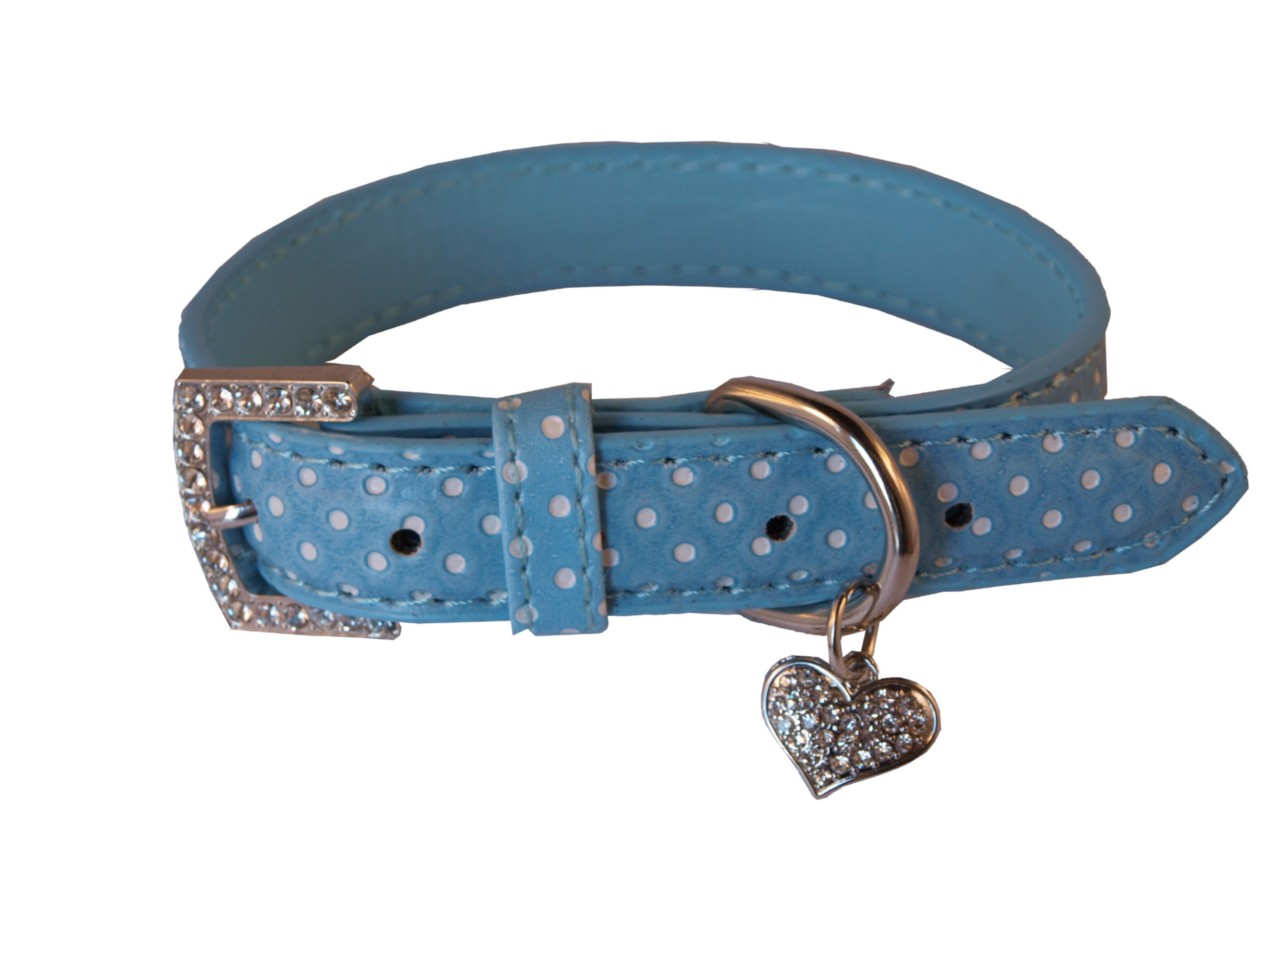 GORGEOUS-LIGHT-BLUE-POLKA-DOT-LEATHER-DOG-COLLAR-WITH-BLING-DIAMANTE-HEART-CHARM